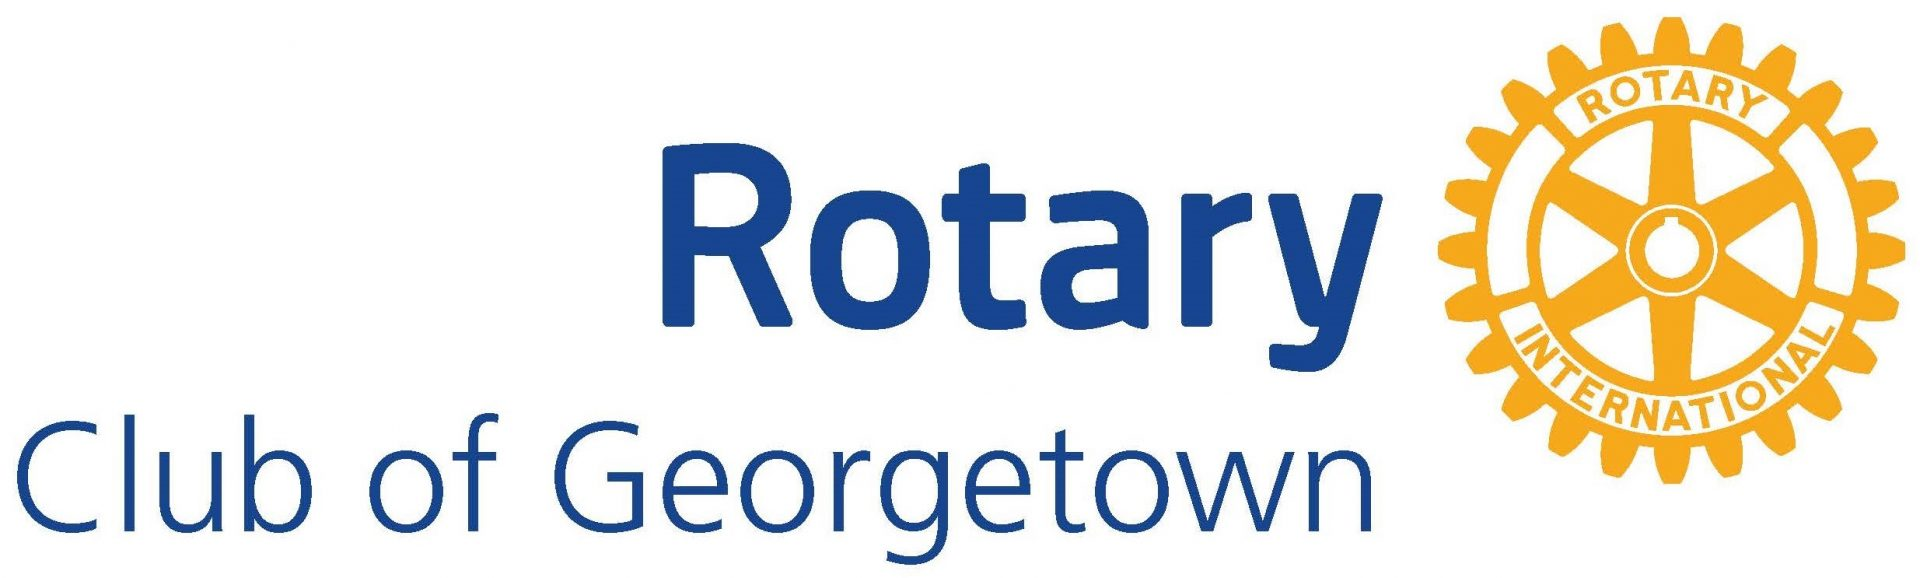 Rotary_New Cropped